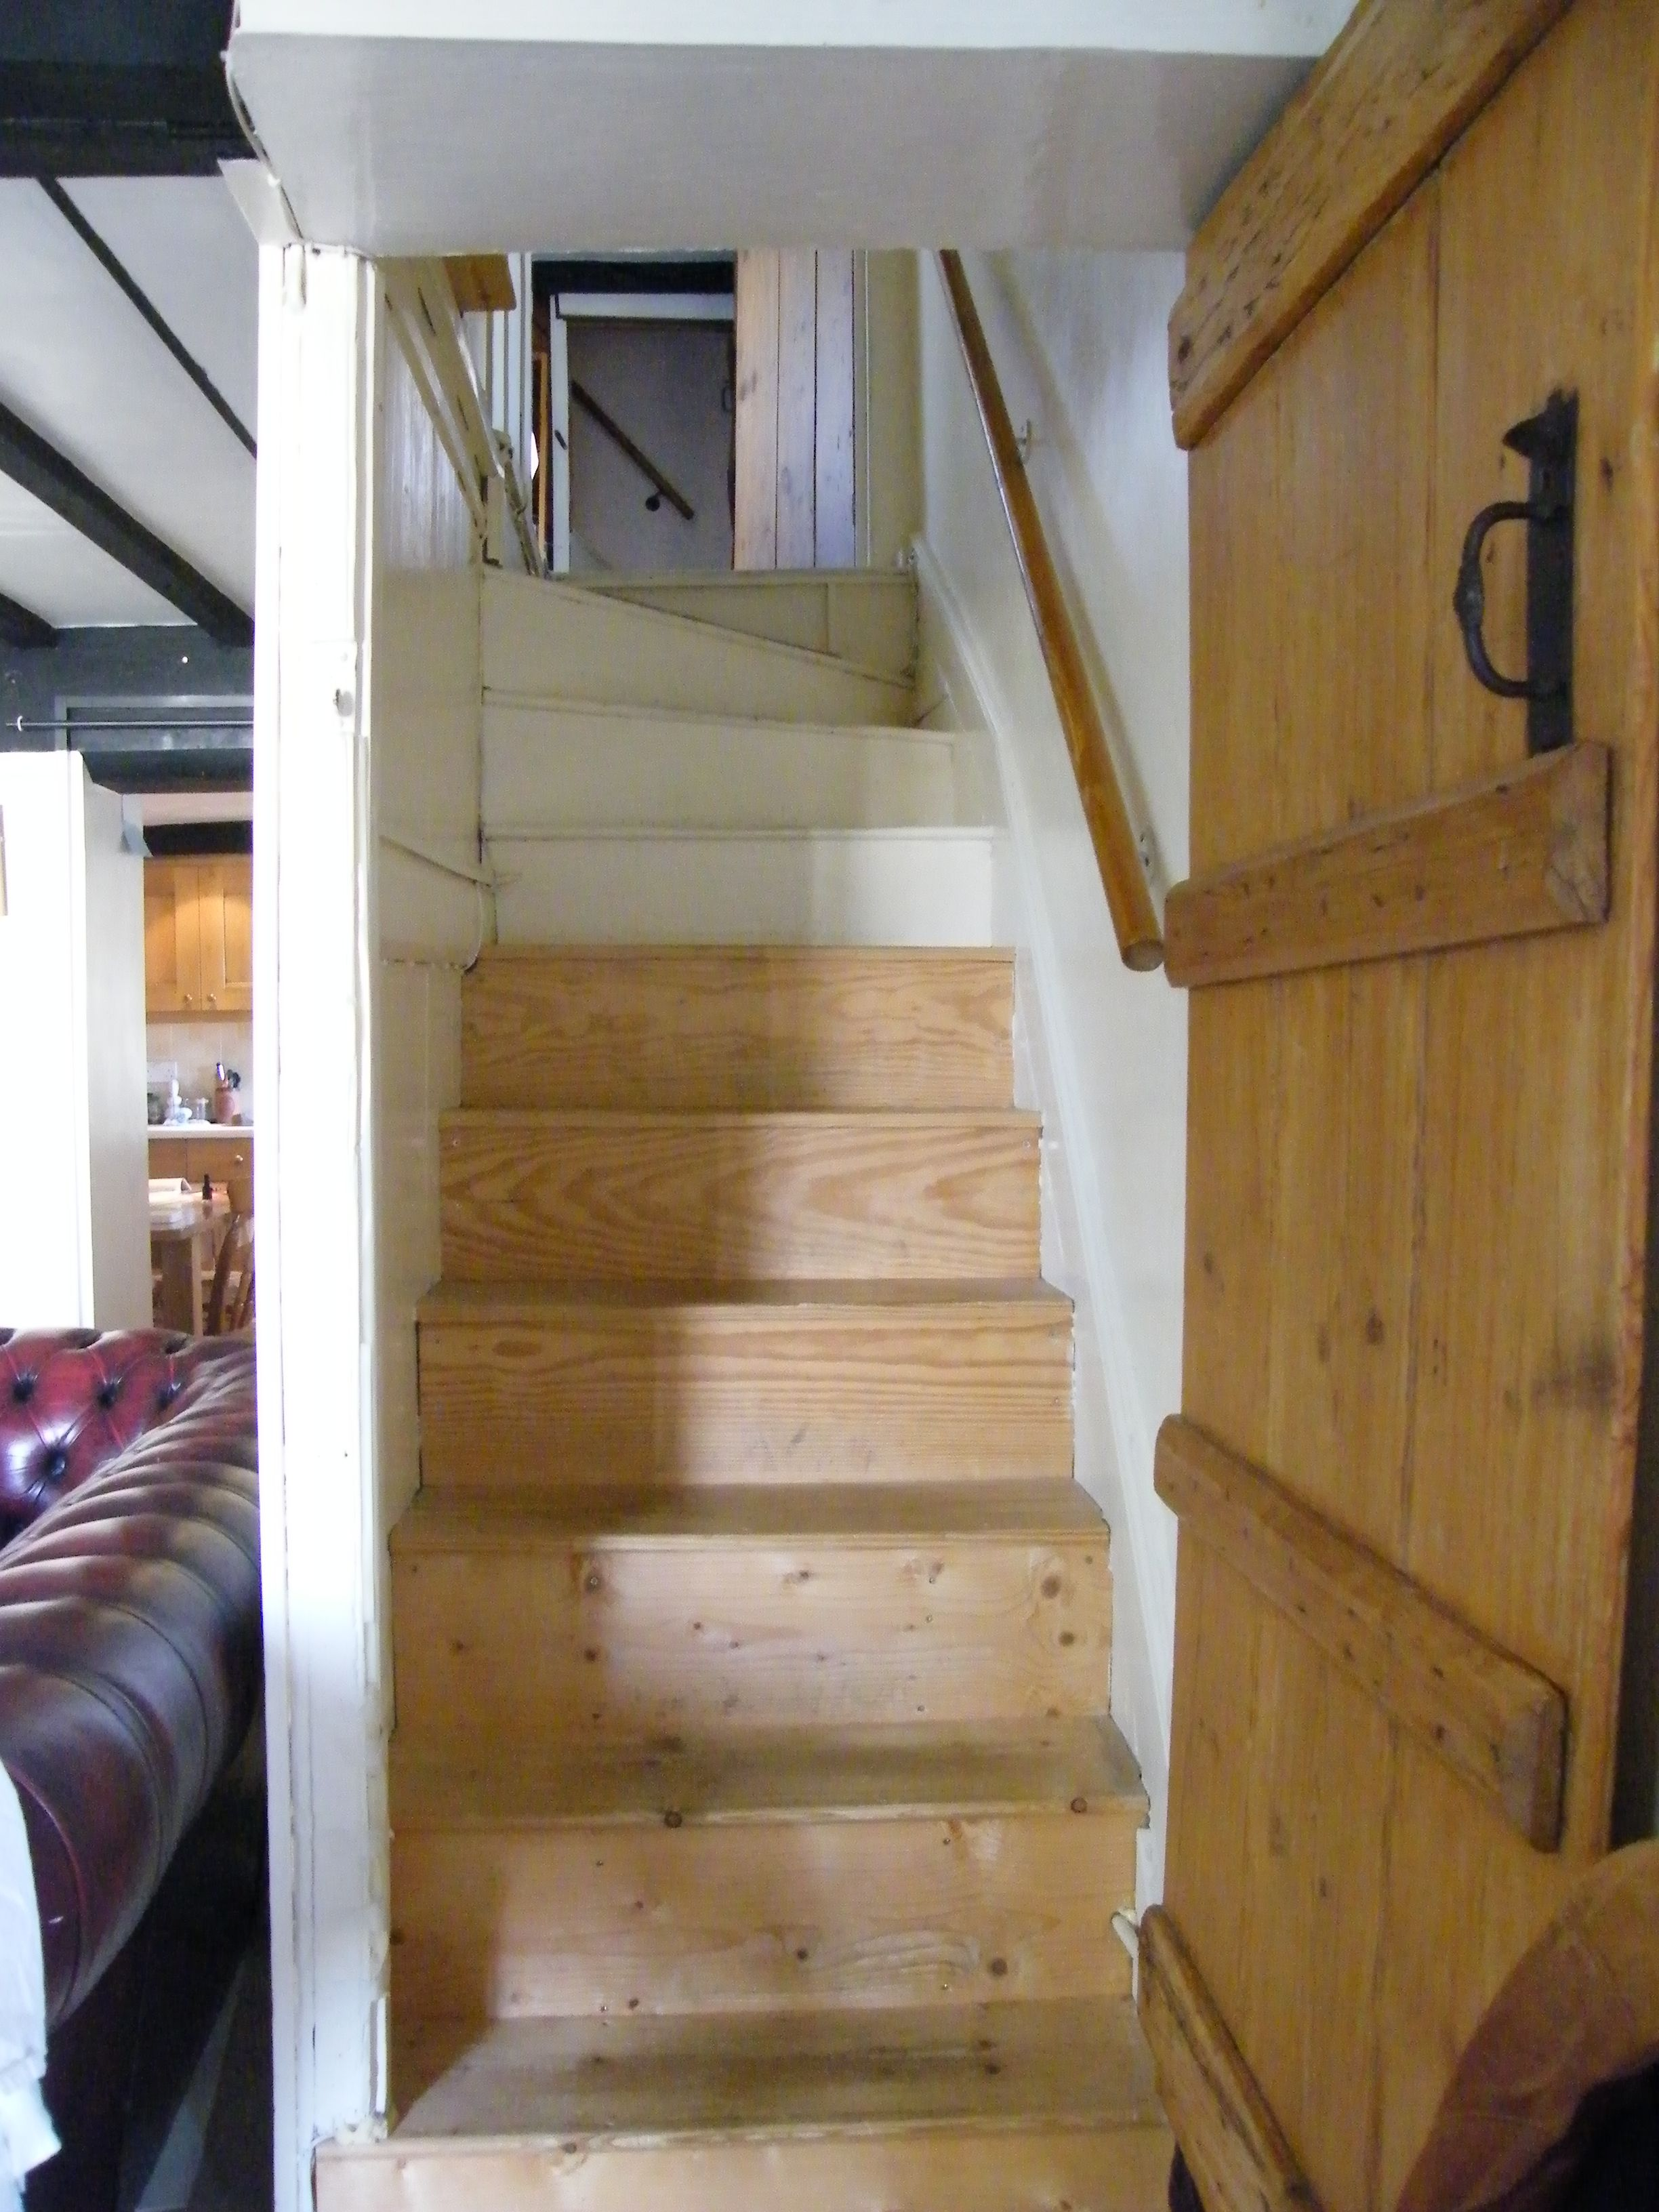 Two Sets Of Steep Stairs Heading Up To Diane Young S Manic Attic Studio Attic Renovation Attic Remodel Attic Design